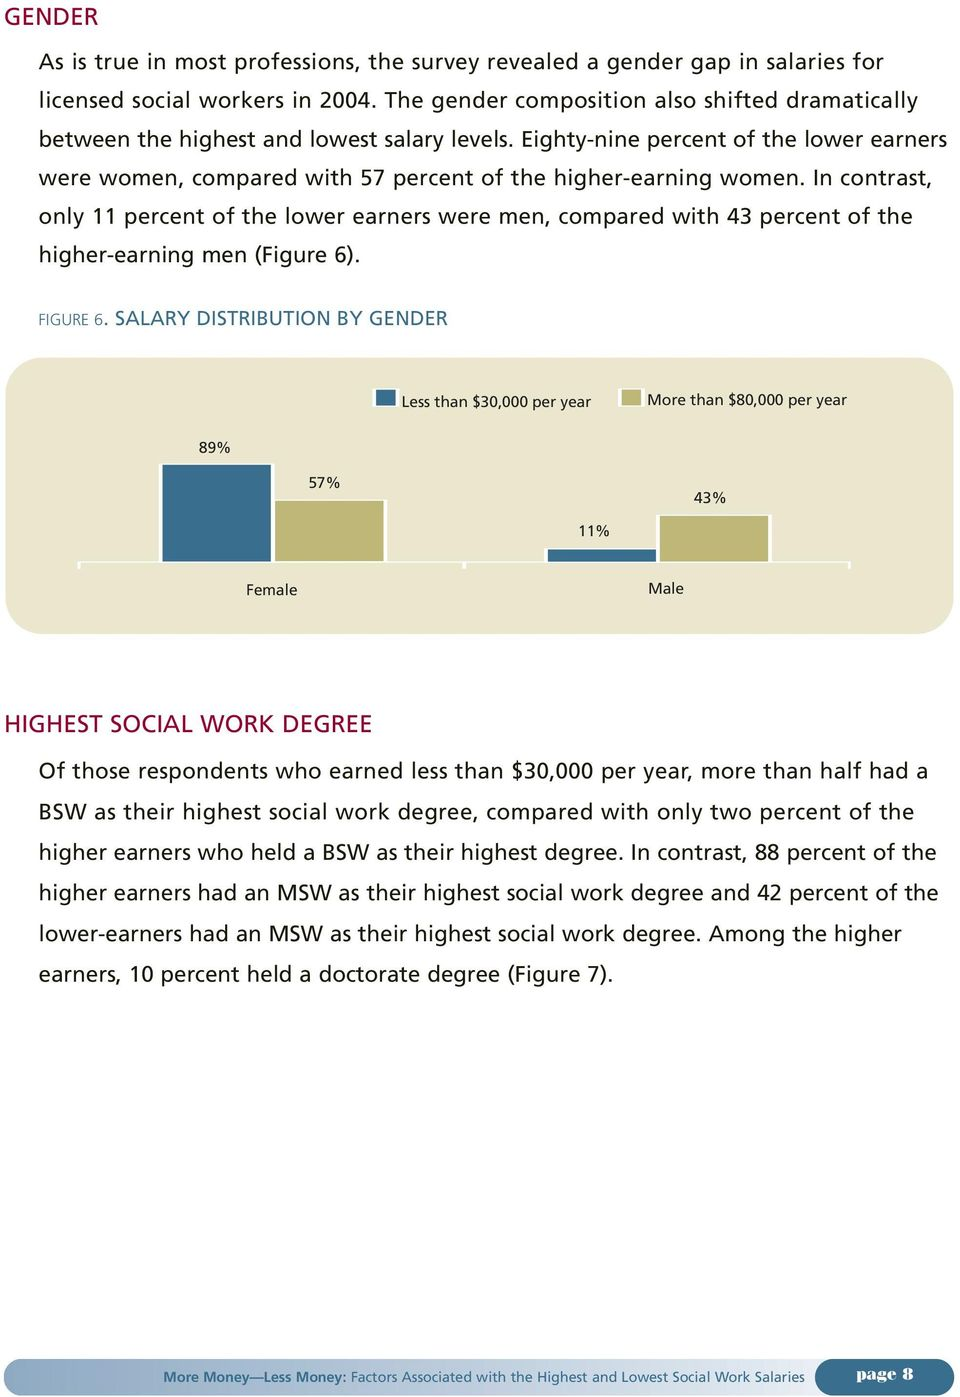 Eighty-nine percent of the lower earners were women, compared with 57 percent of the higher-earning women.